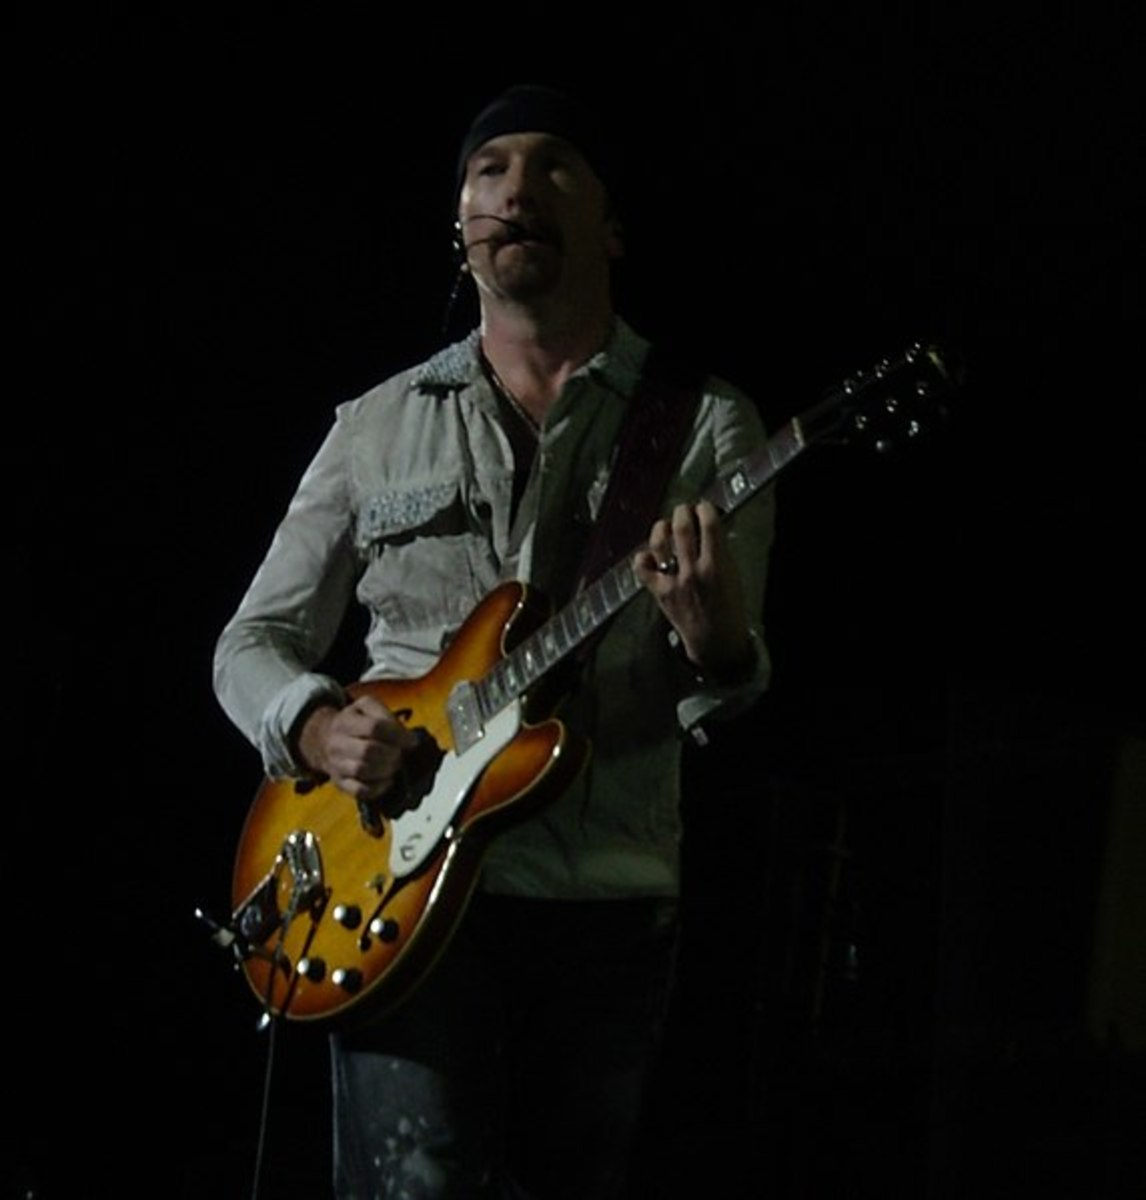 The Edge of U2 with his Epiphone Casino